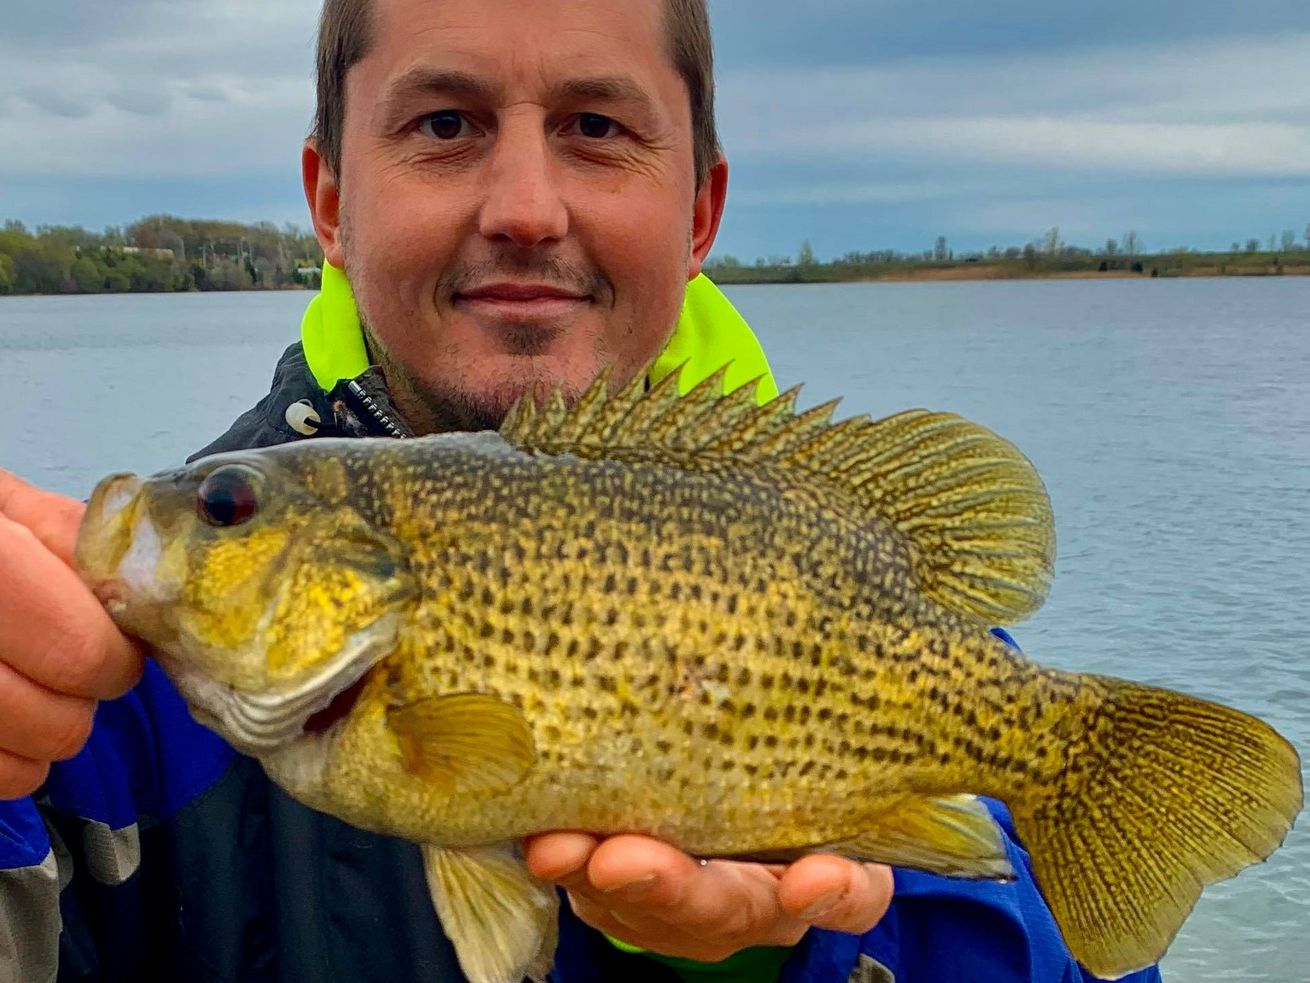 Jonny Pitelka with a state-record quality rock bass, caught and released at Three Oaks Recreation. Provided photo